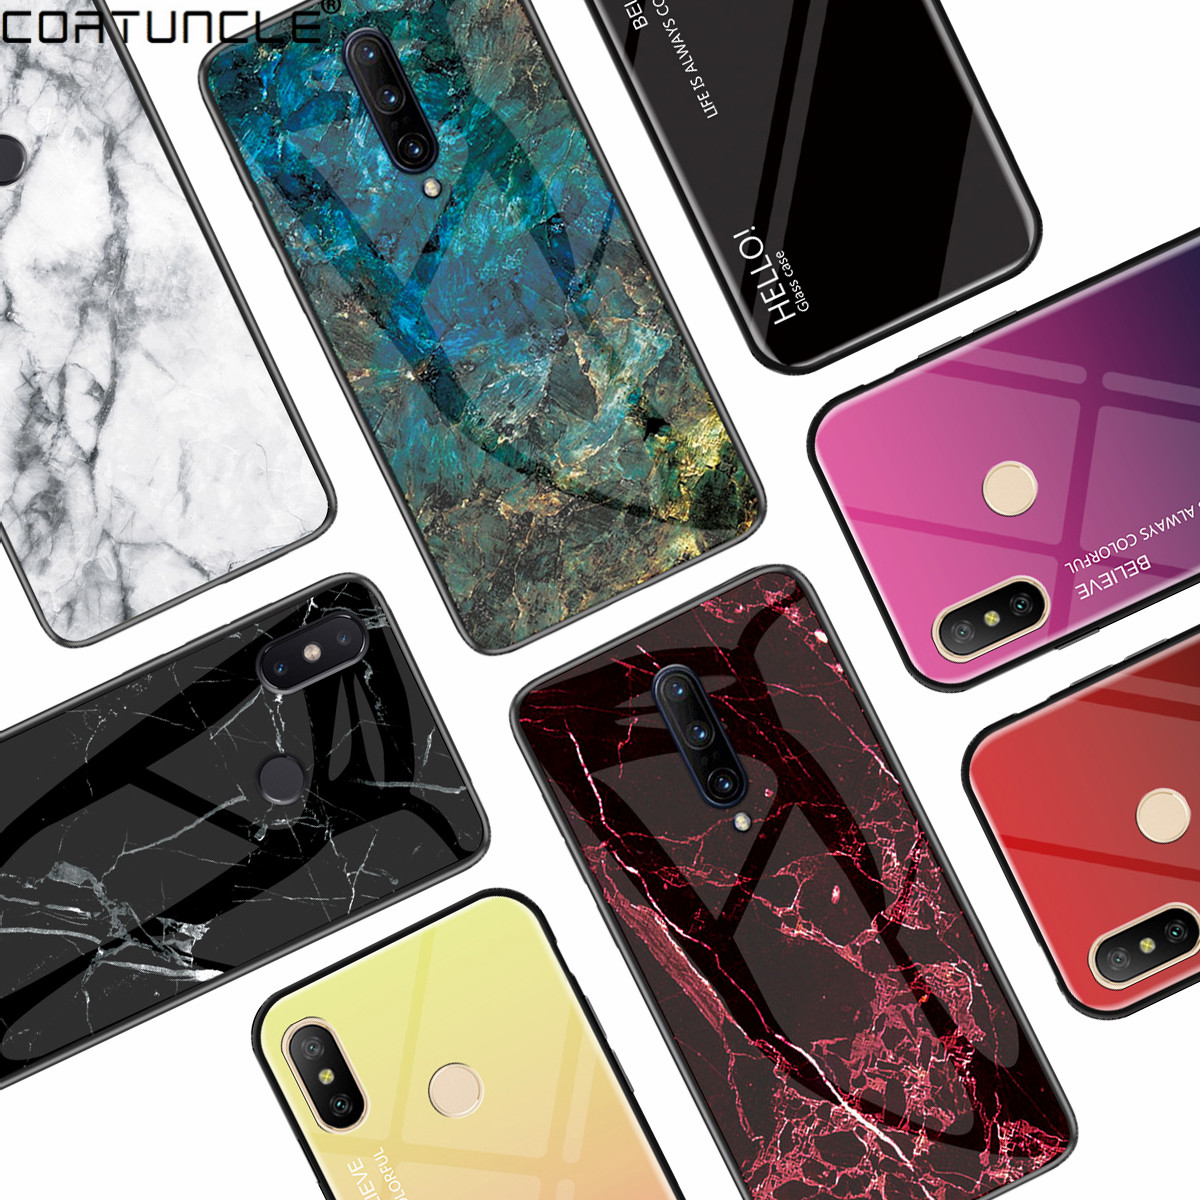 Marble <font><b>Hard</b></font> Tempered Glass <font><b>Case</b></font> For Coque <font><b>Nokia</b></font> 4.2 <font><b>Case</b></font> Gradient Protective Back Cover For <font><b>Nokia</b></font> 1 7 <font><b>3.1</b></font> 6.1 7.1 X71 Phone <font><b>Case</b></font> image